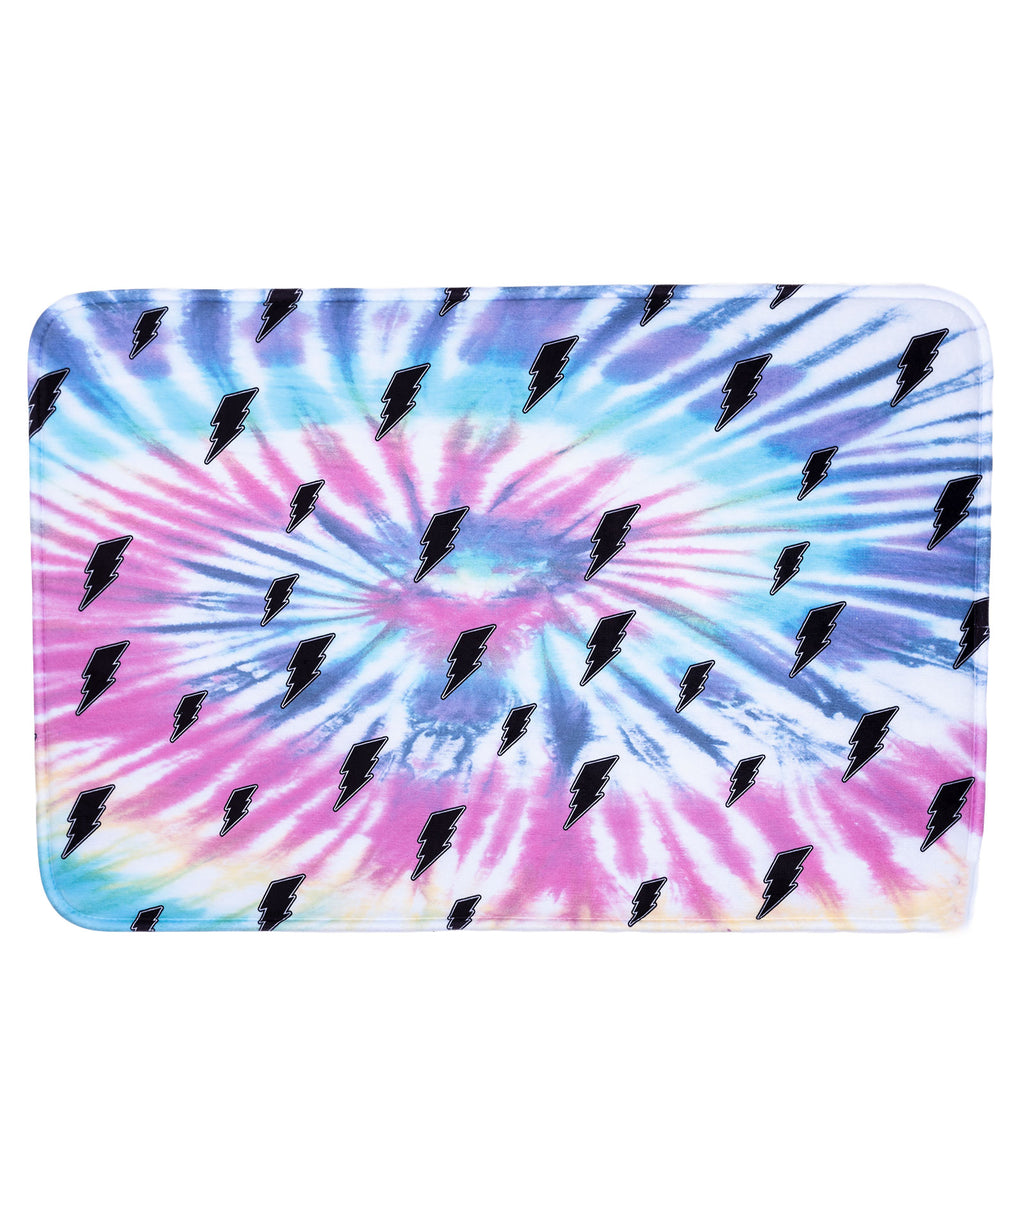 Penelope Wildberry Bolt Tie-Dye Mat